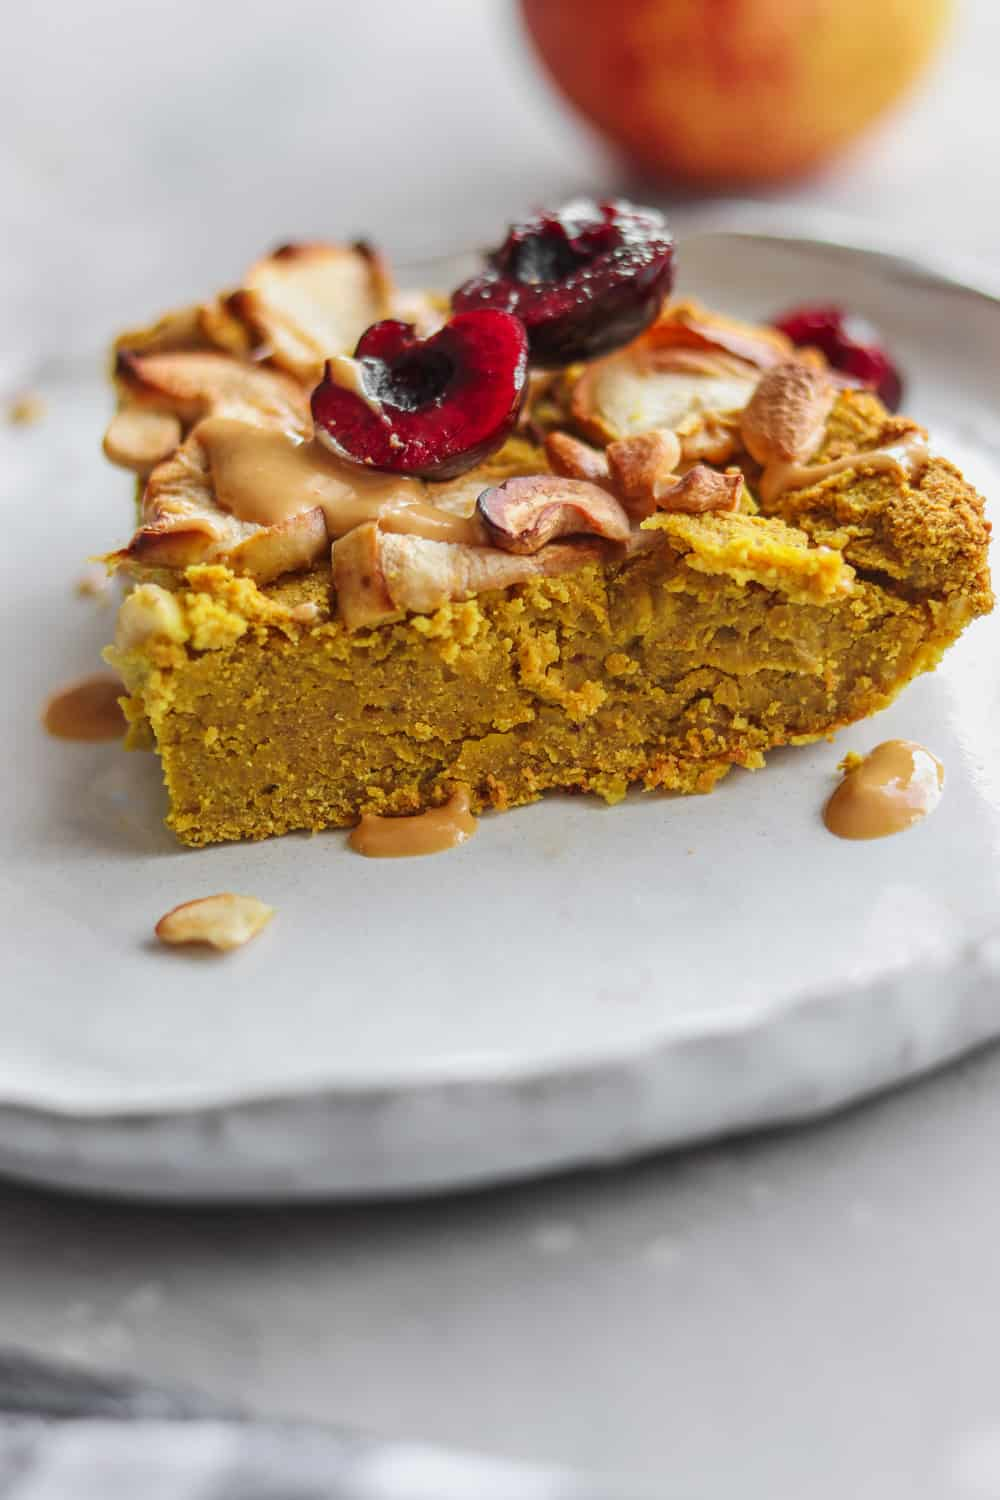 slice of chickpea cake topped with fruit and nuts